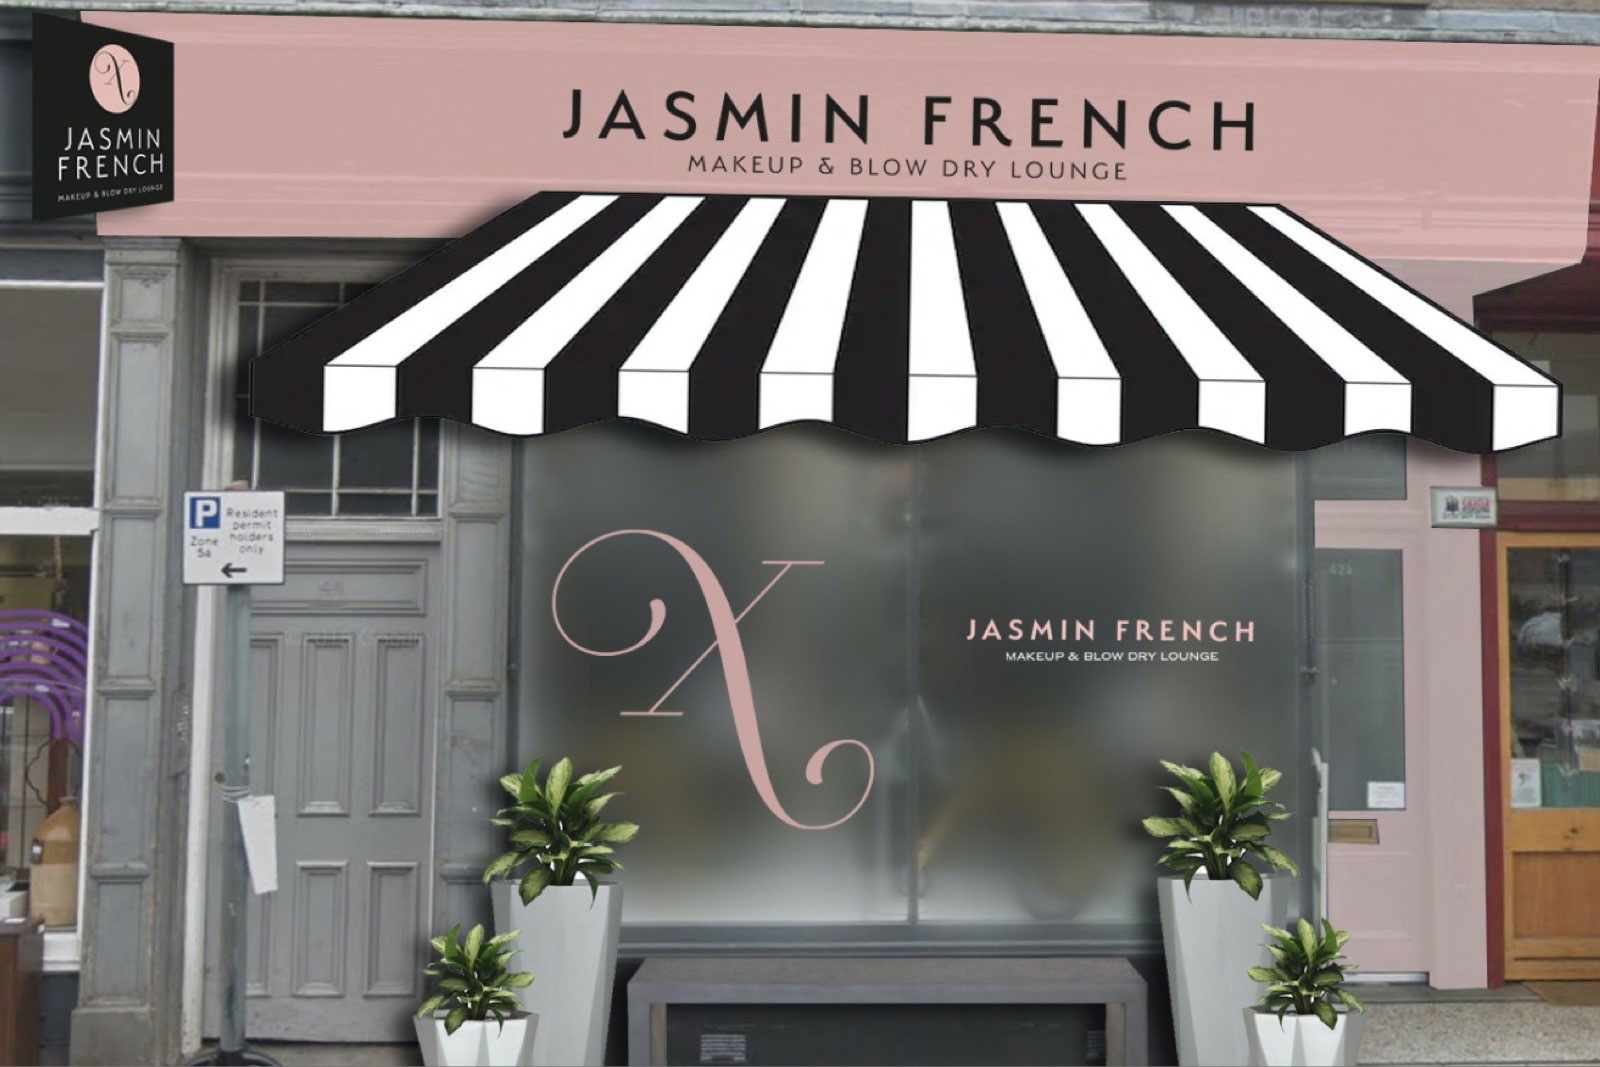 JasminFrench have moved